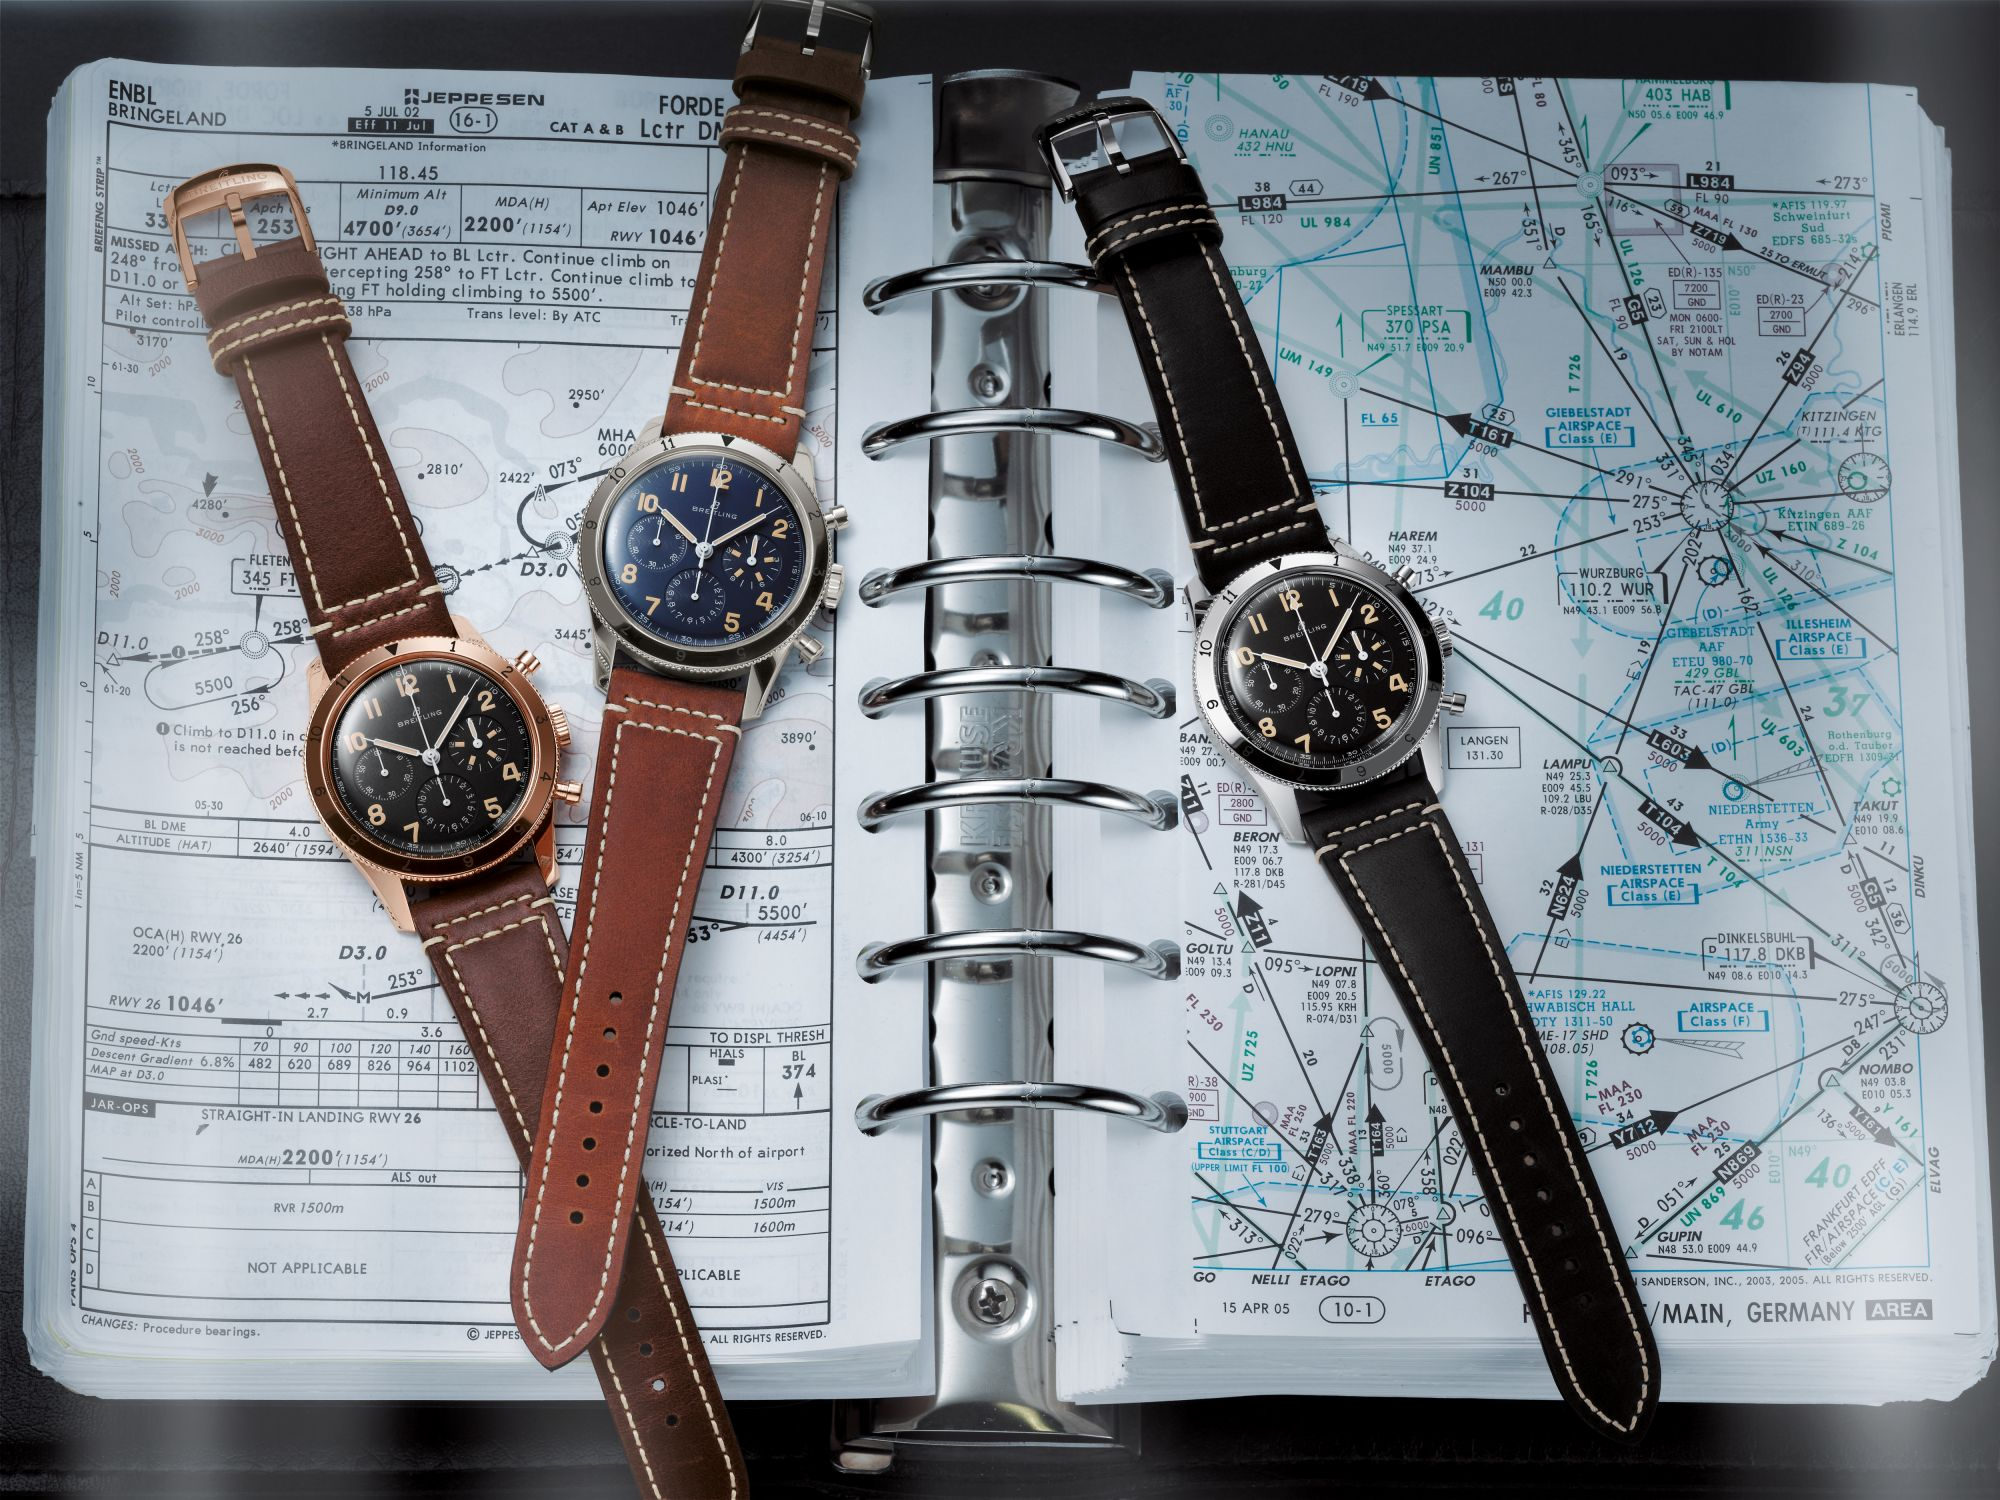 AVI Ref. 765 1953 Re-Edition and AVI 1953 Edition watches